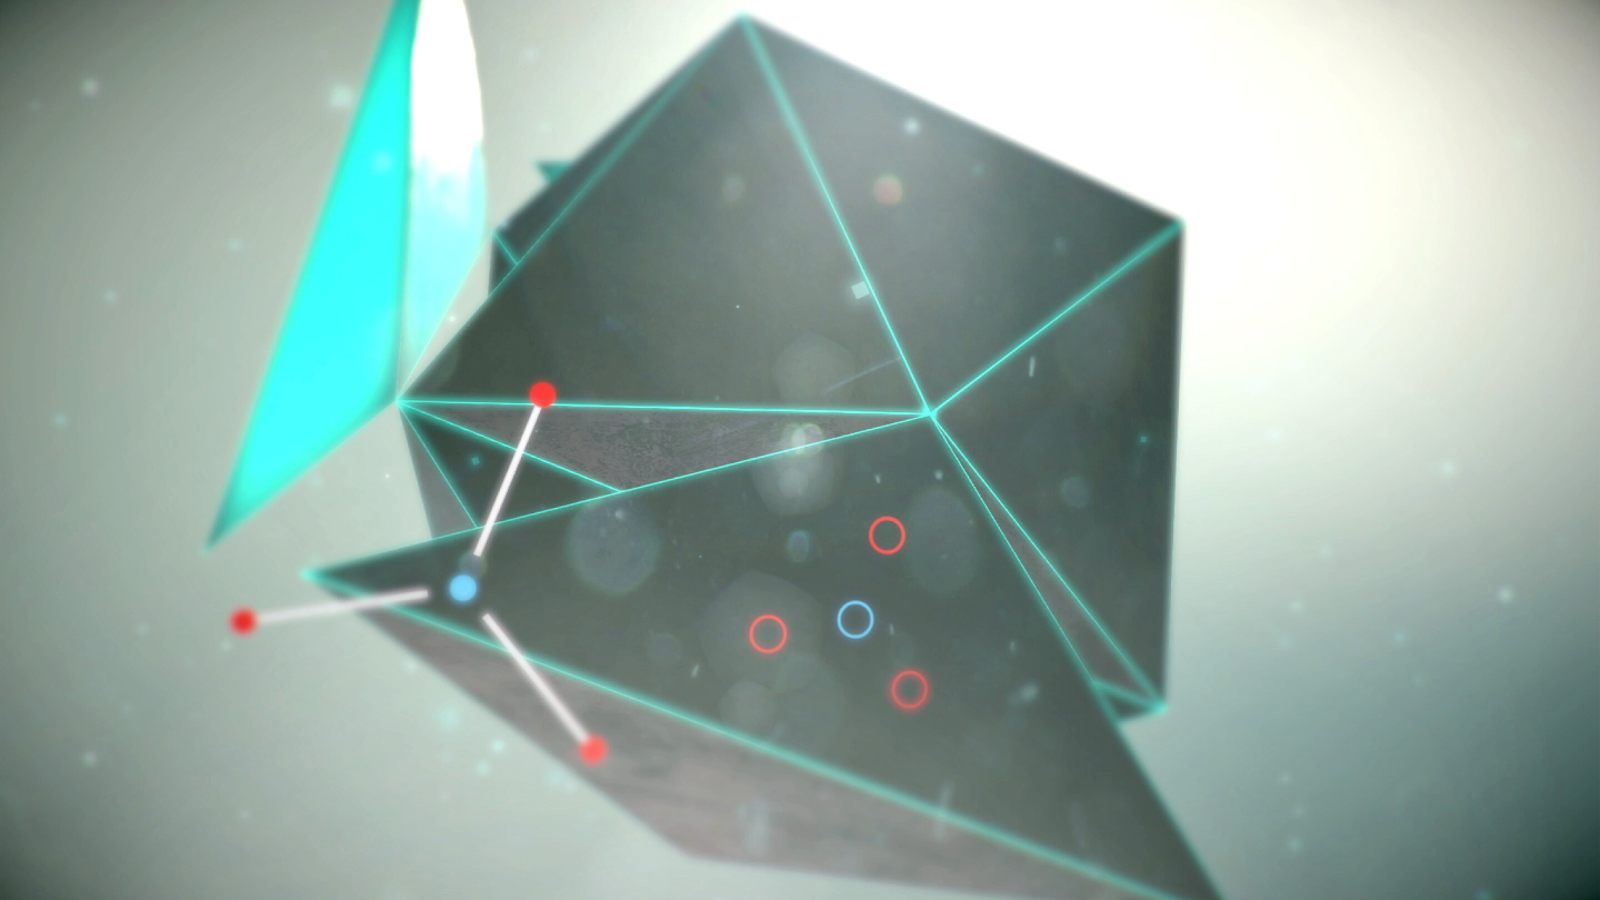 _PRISM Screenshot 2